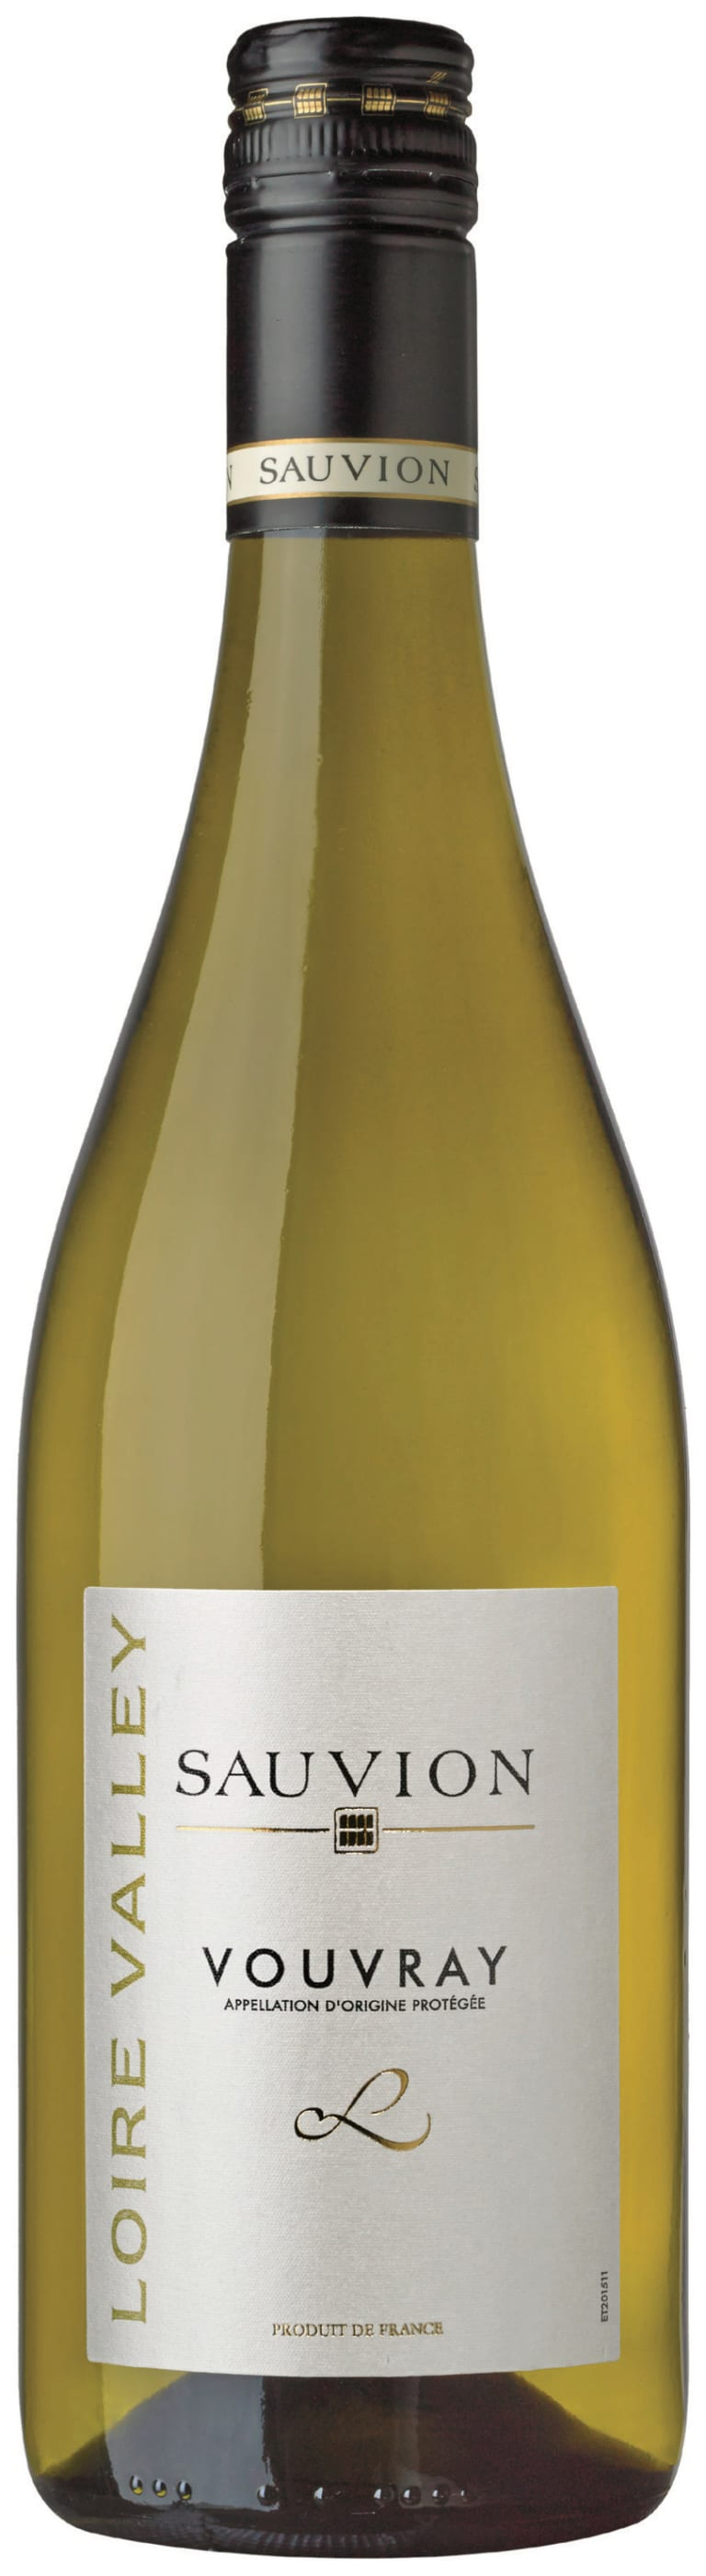 SAUVION VOUVRAY 750ml